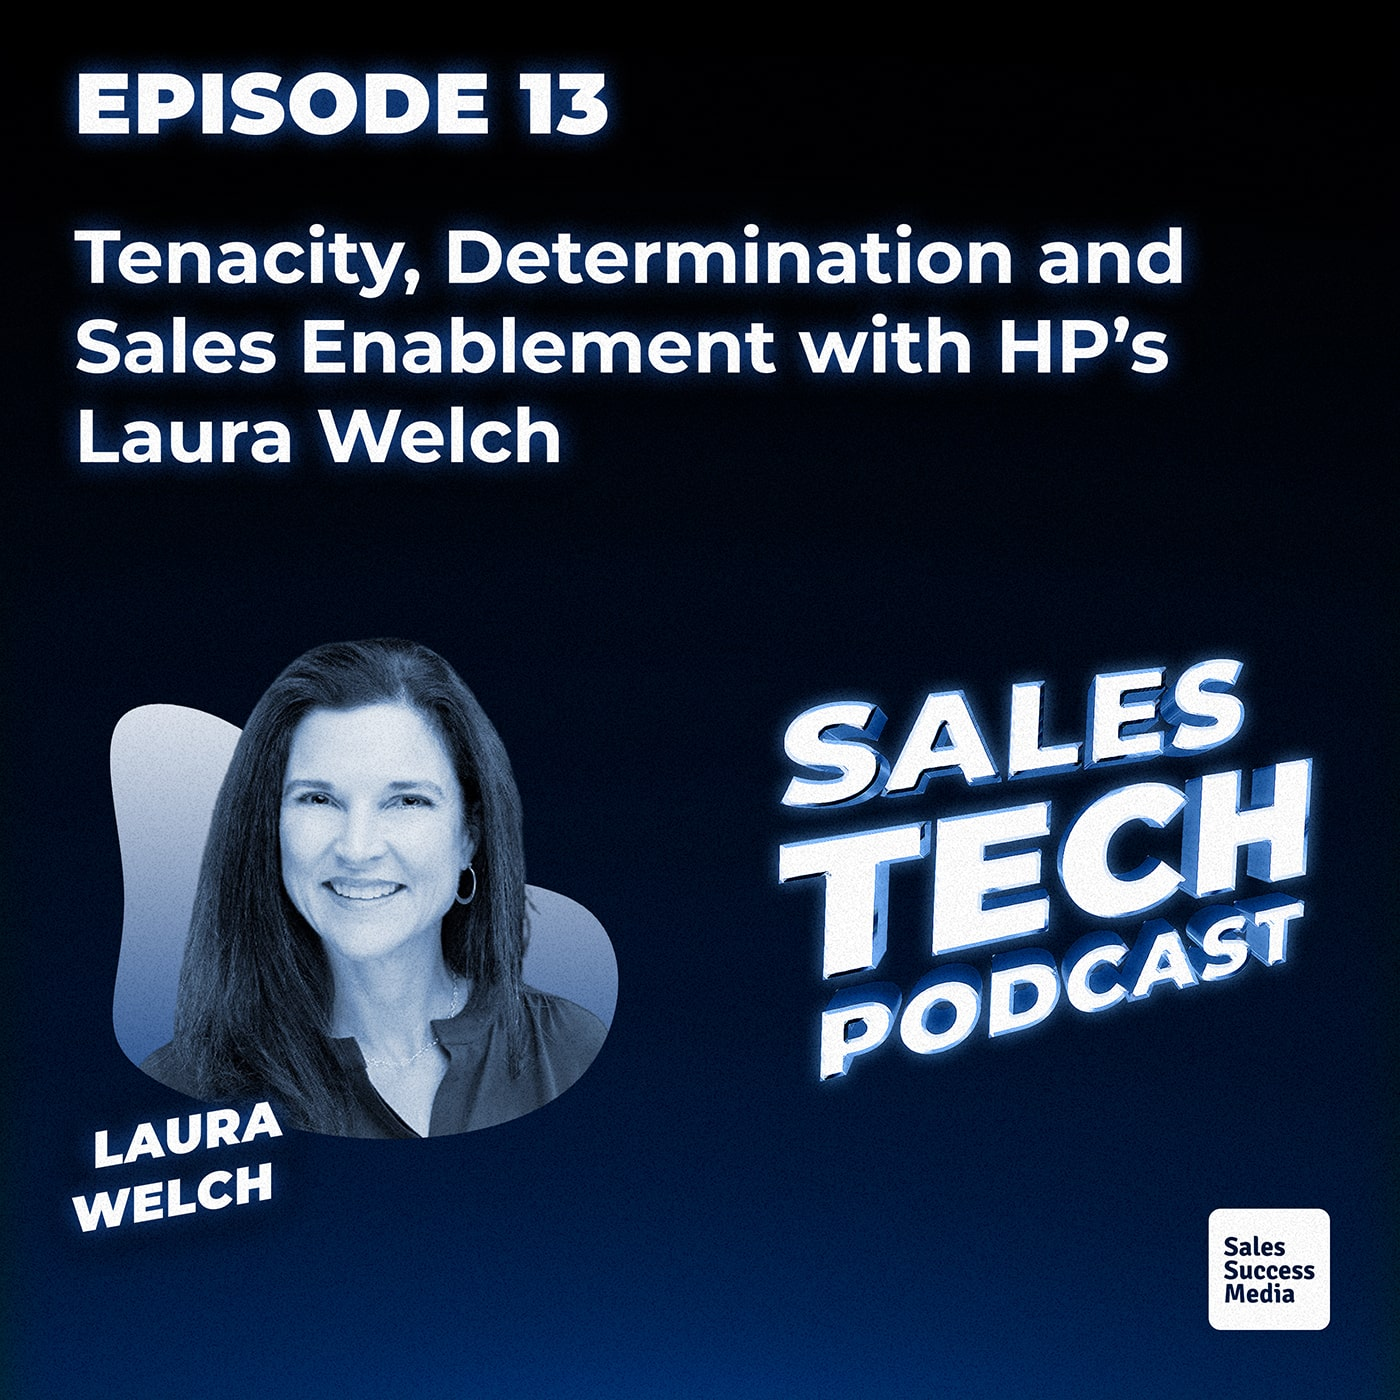 13: Tenacity, Determination and Sales Enablement with HP's Laura Welch